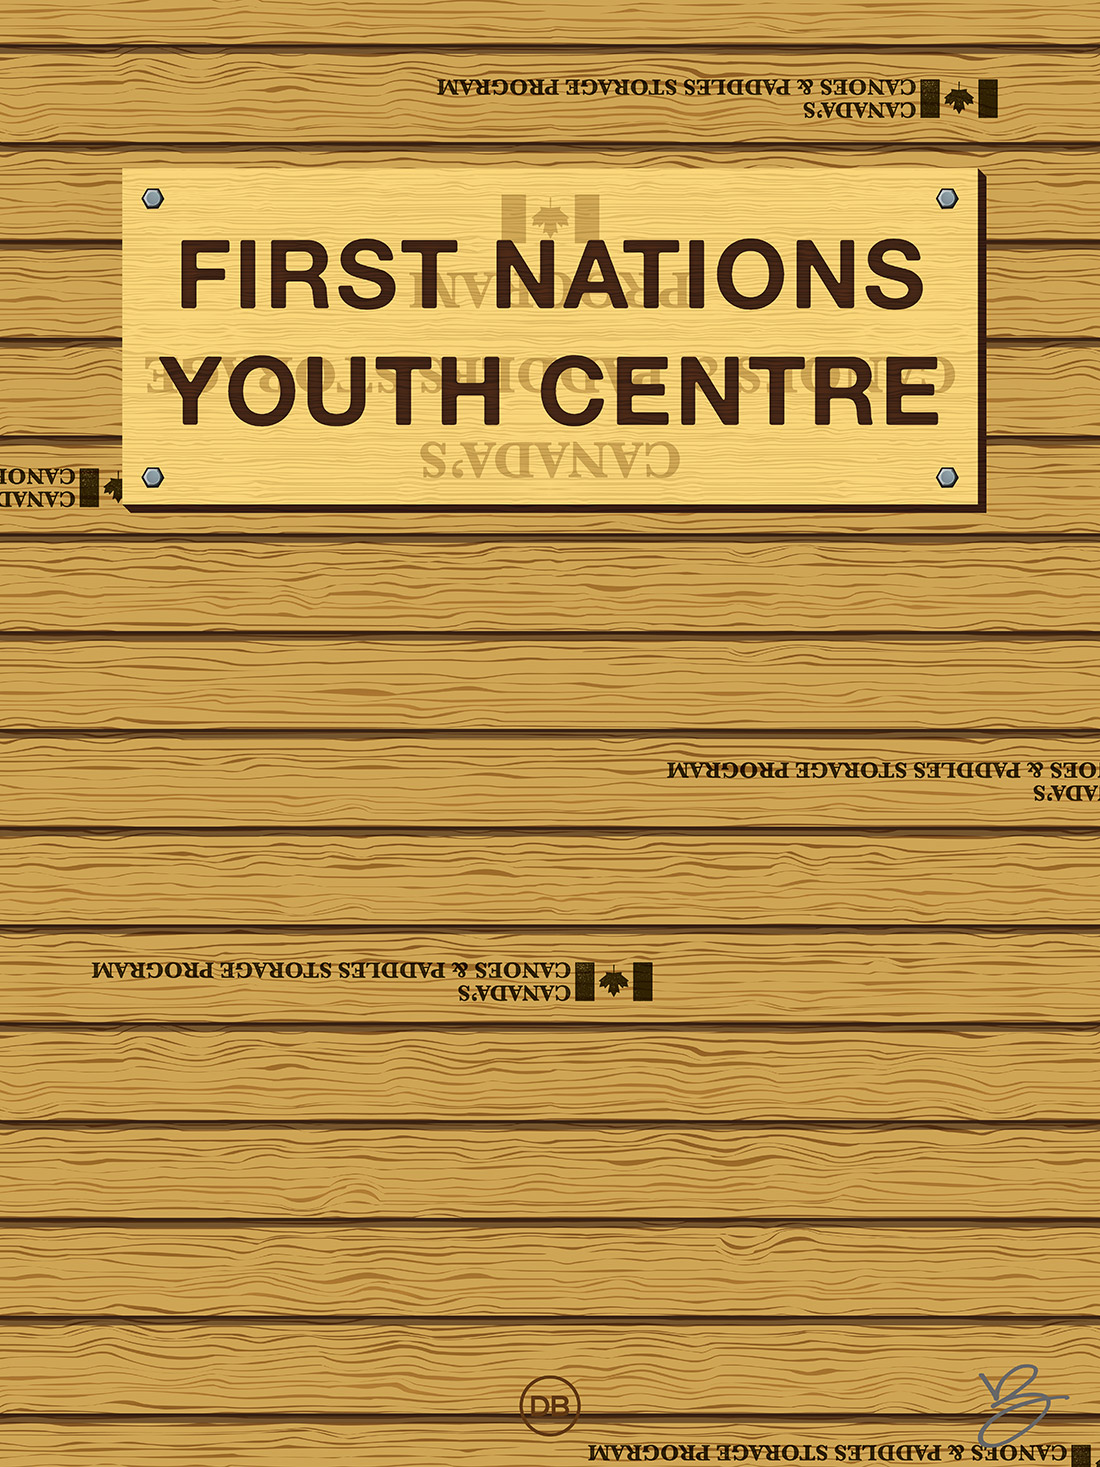 David Bernie Canoe Sheds for First Nations Youth Centres Indian Country 52 4